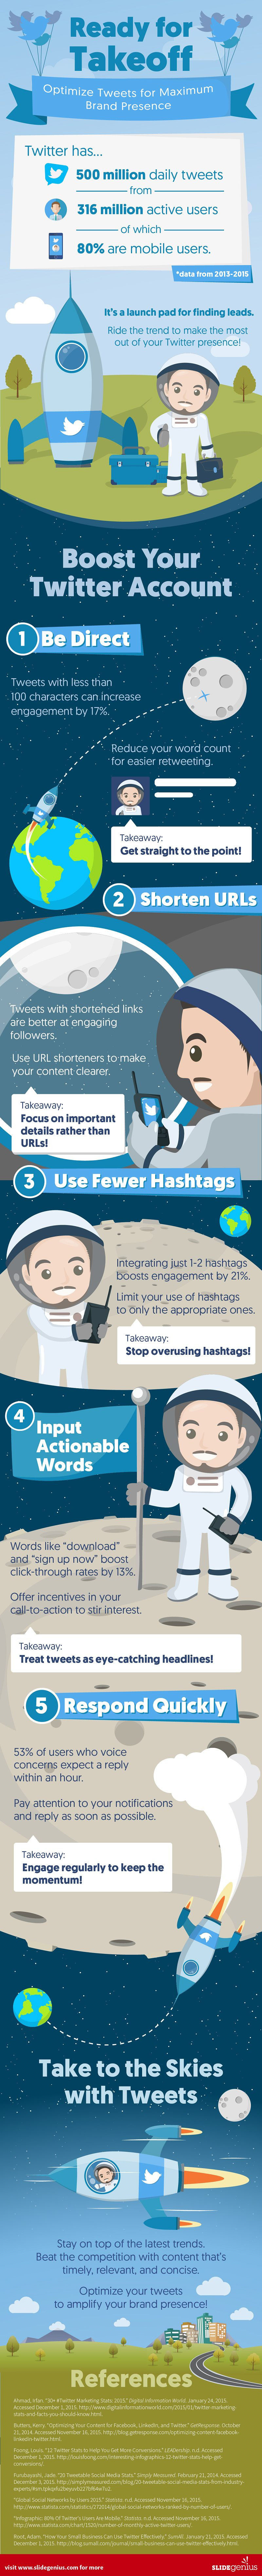 optimise tweets for maximum engagement infographic